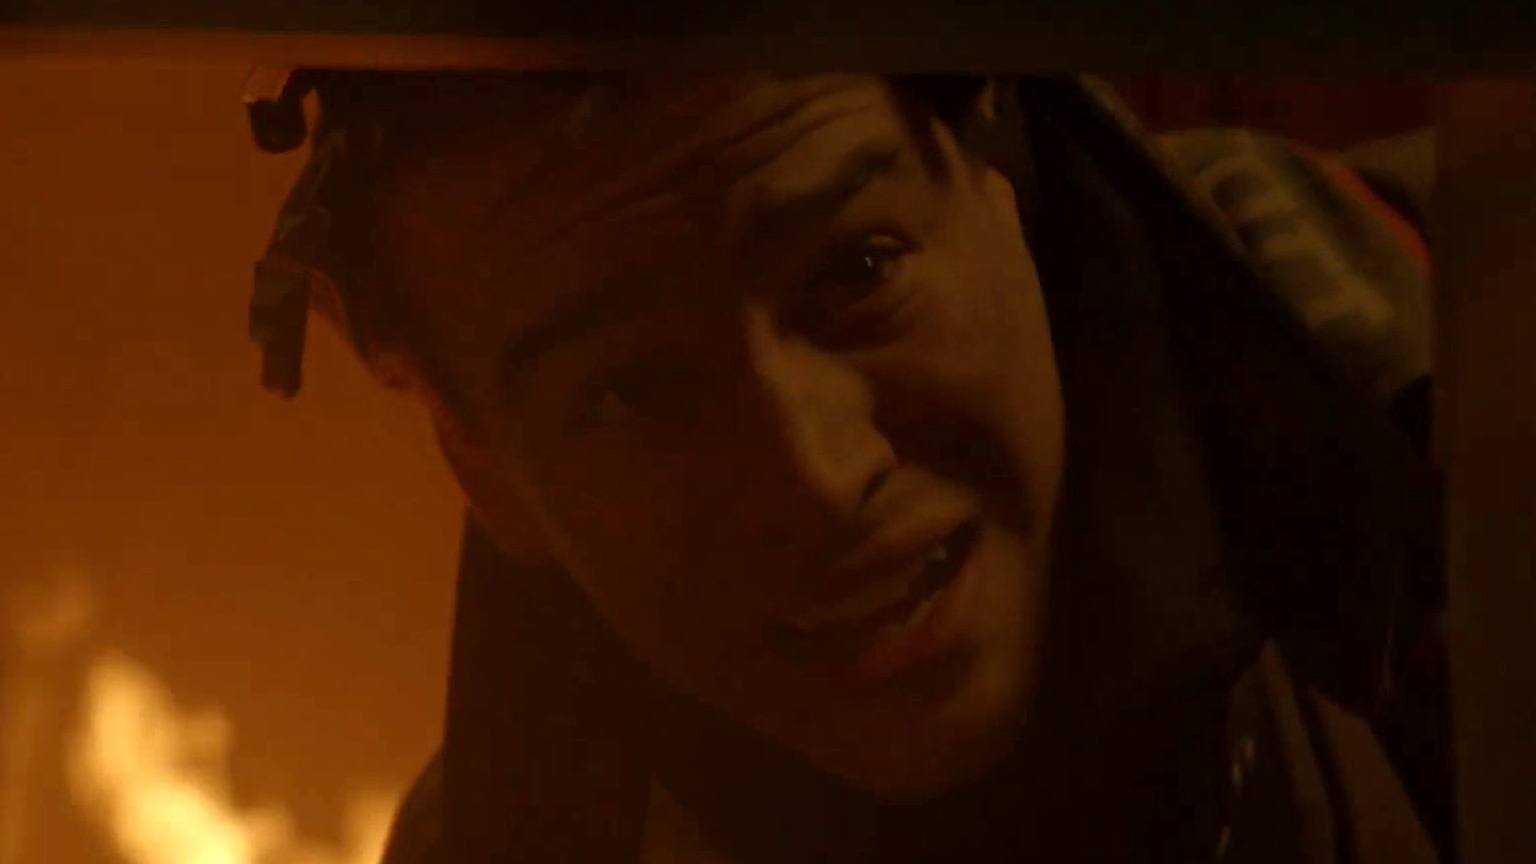 Chicago Fire: Gallo And Casey Save A Six-Year-Old Boy From A Burning House